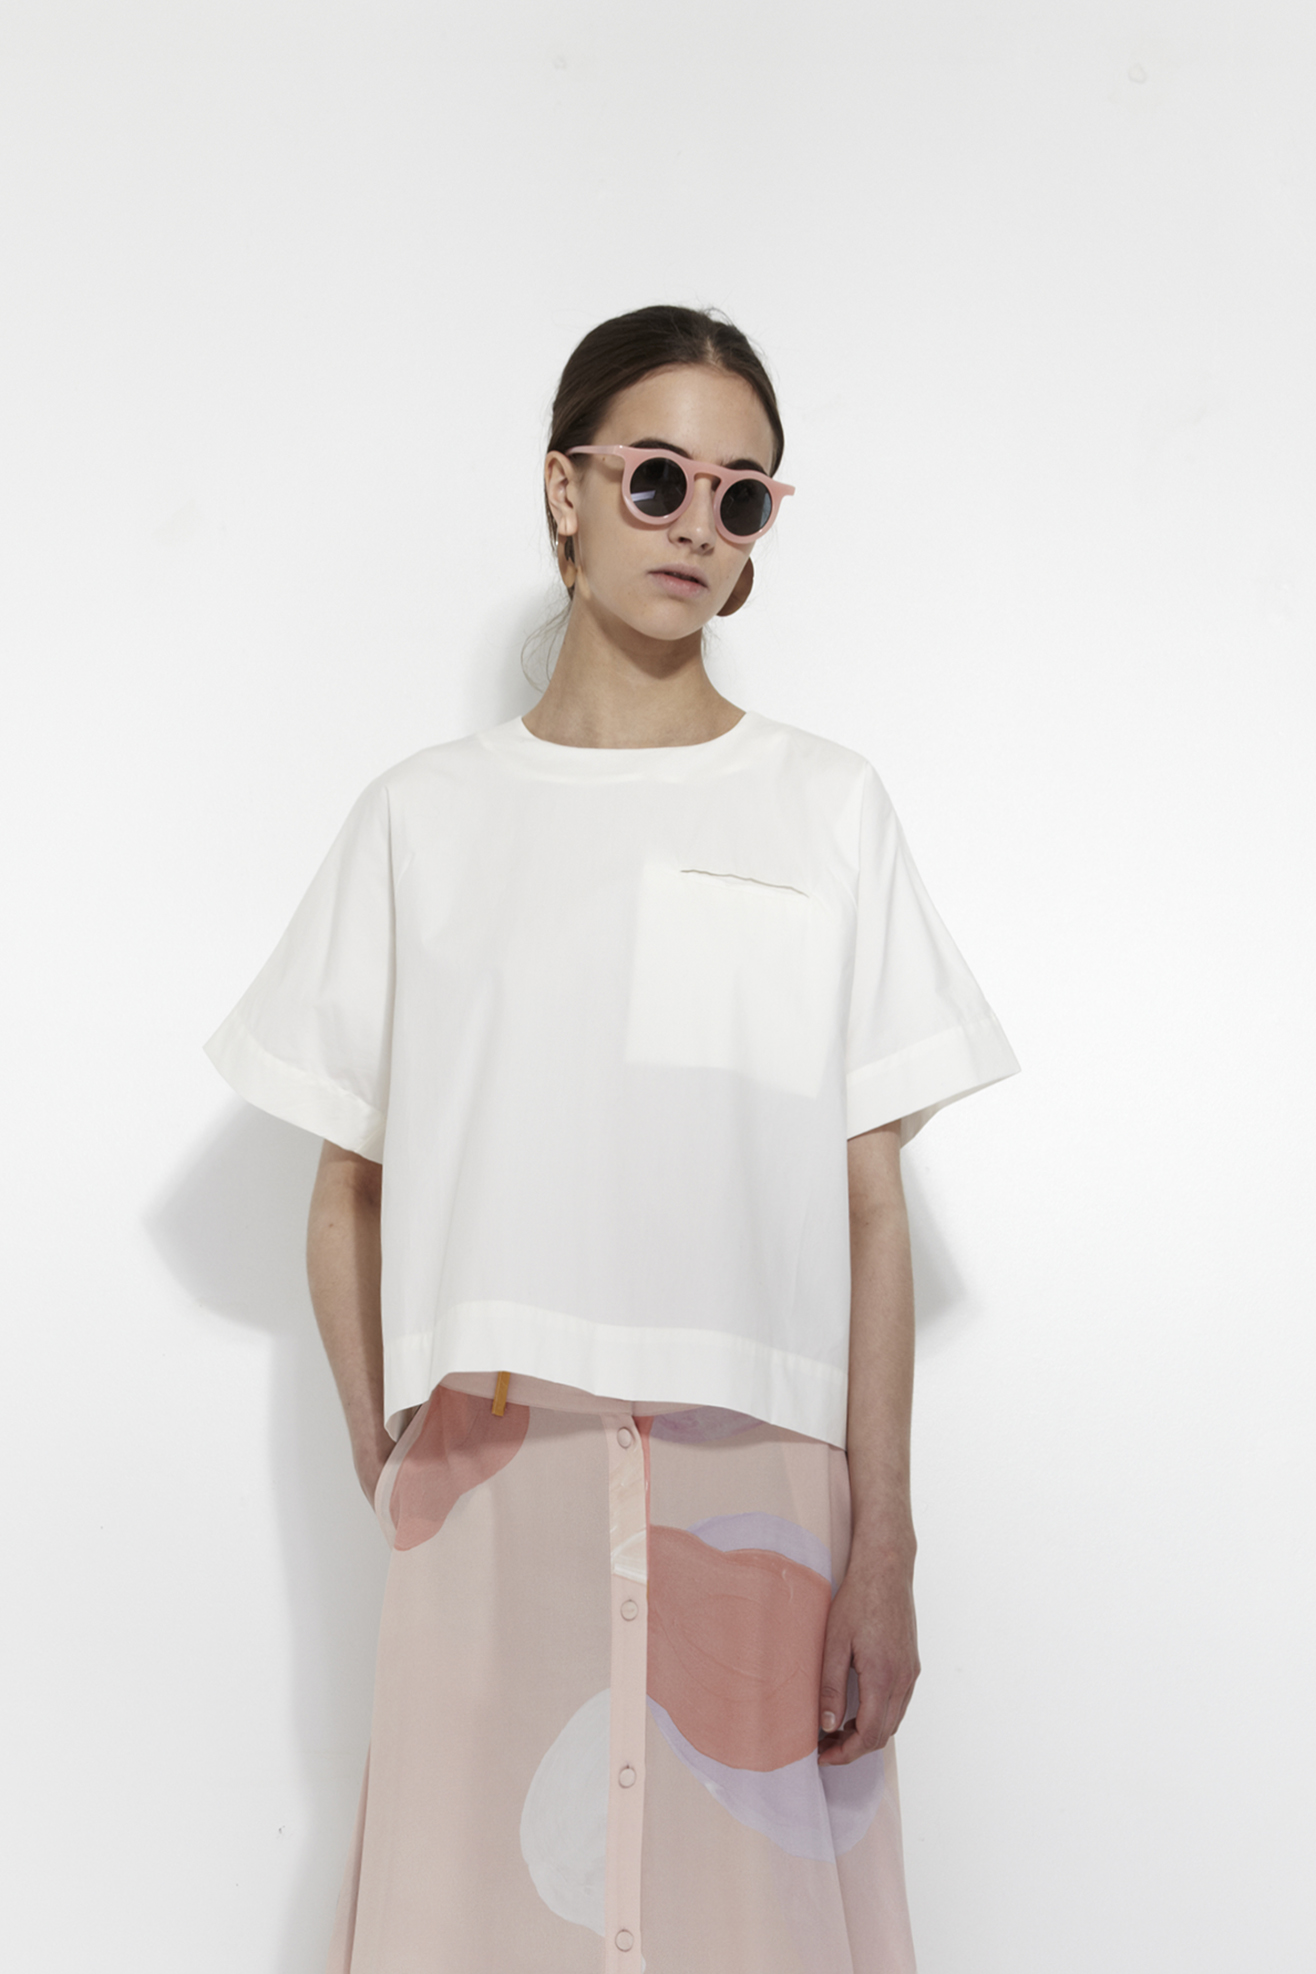 White blouse by Mr. Larkin | Copenhagen based clothing label